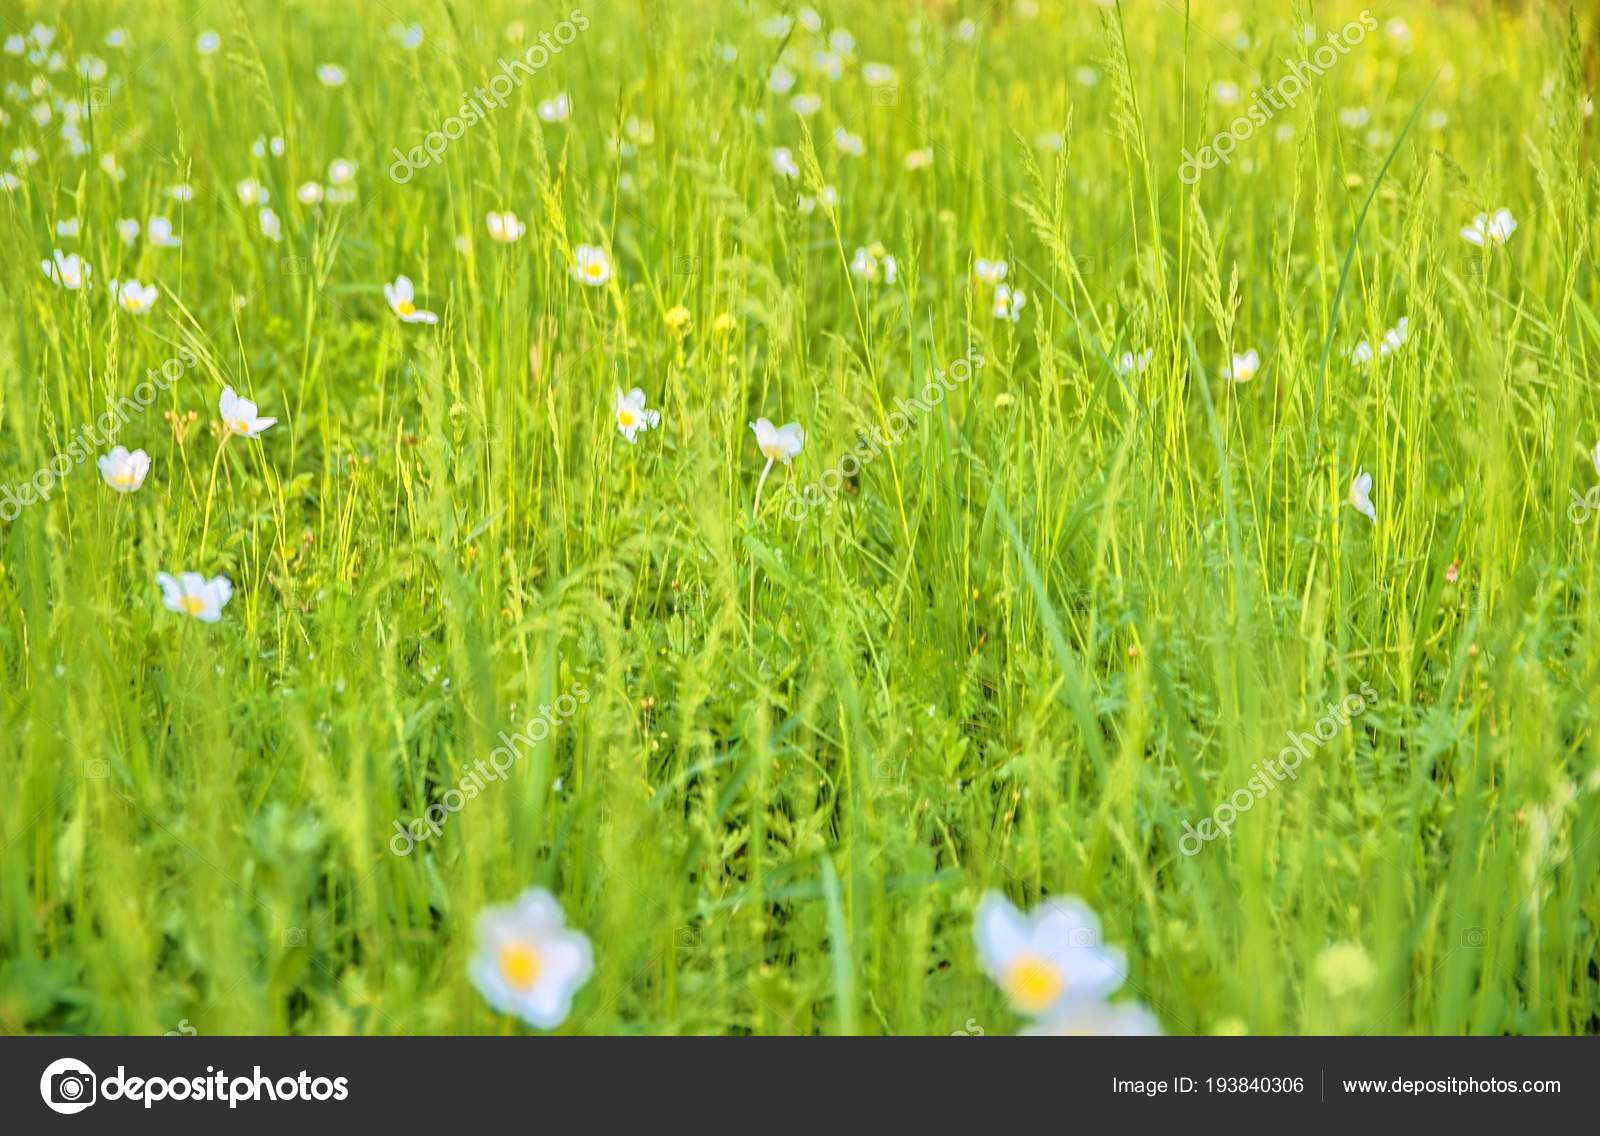 Beautiful spring green meadow with white blooms of flowers spring beautiful spring green meadow with white blooms of flowers spring backgrounds and concept stock izmirmasajfo